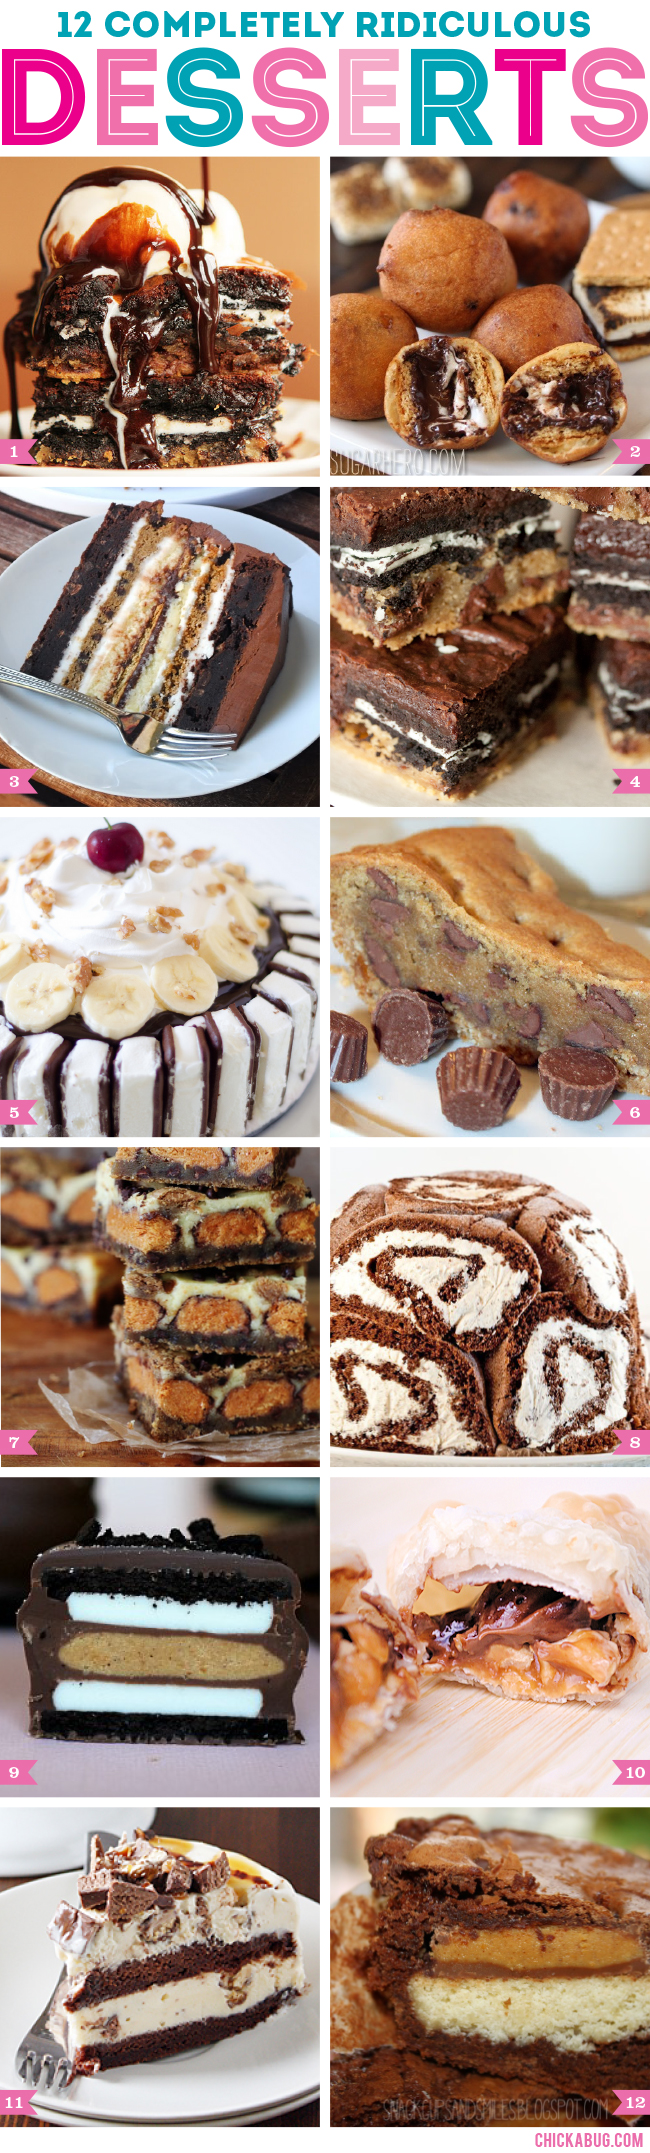 12 completely ridiculous desserts (ridiculously DELICIOUS!!)